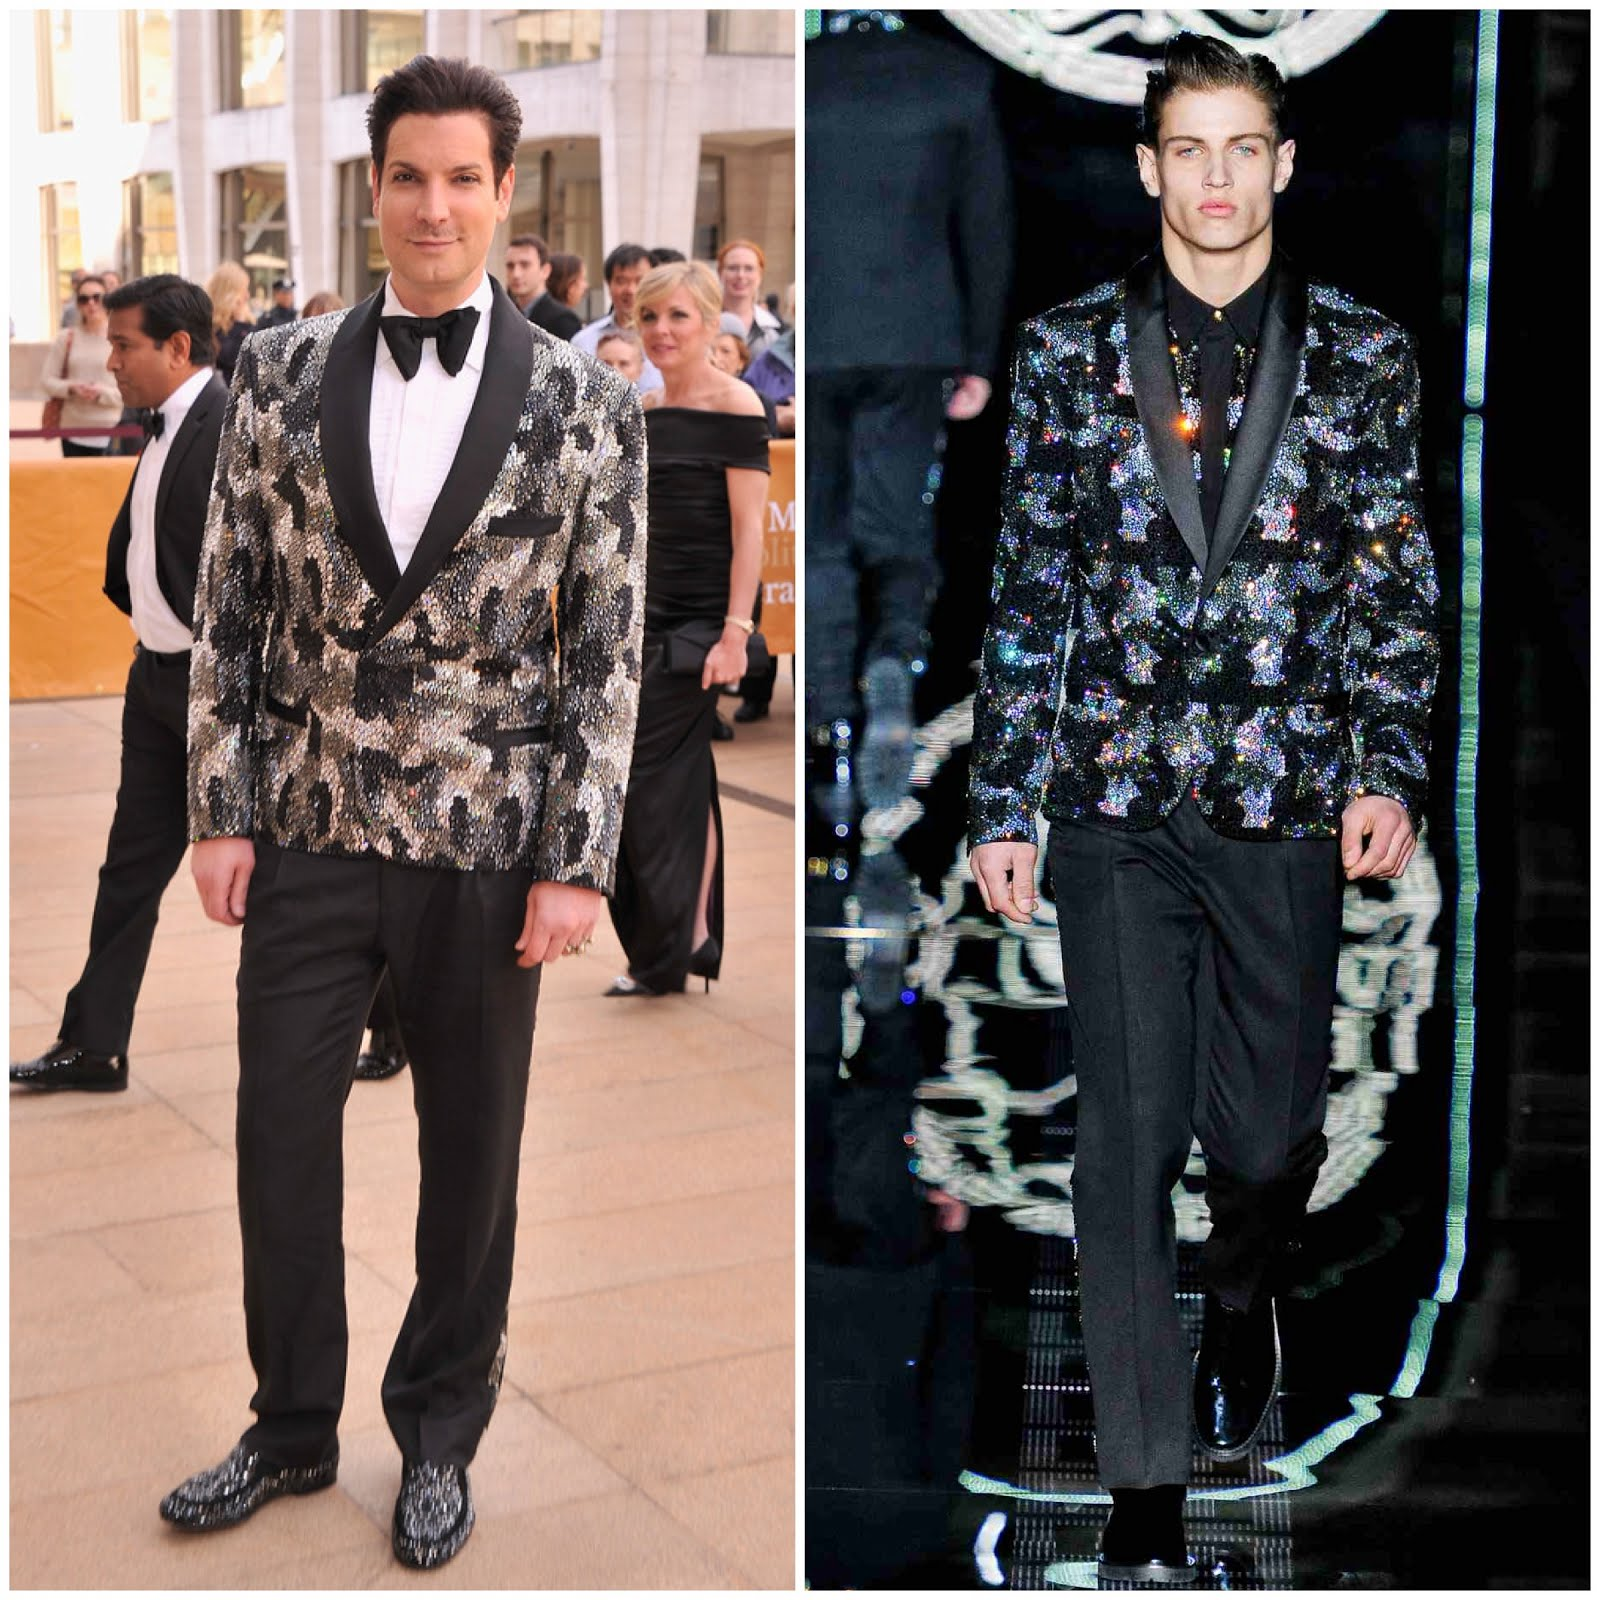 00O00 Menswear Blog: Cameron Silver in Versace menswear Fall Winter 2012 embellished tuxedo jacket - American Ballet Theatre opening night Spring Gala at Lincoln Center May 2013